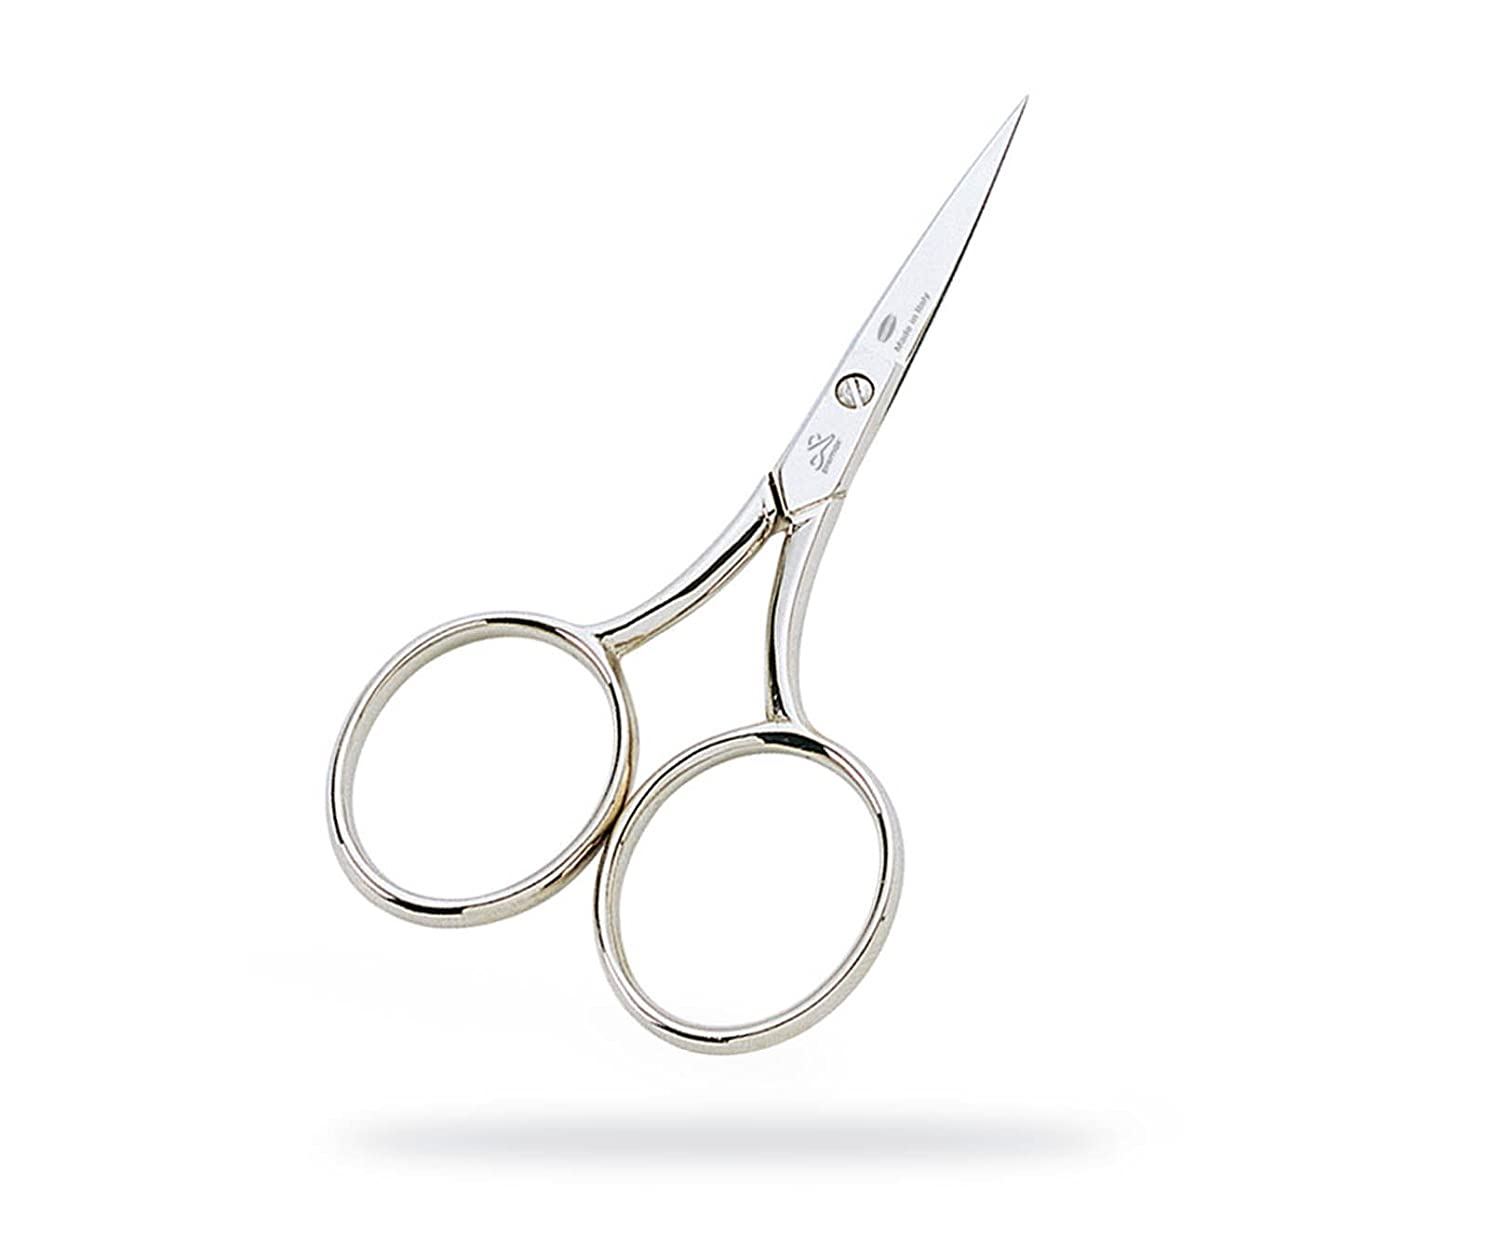 15151 - Embroidery Scissors - Classica Collection